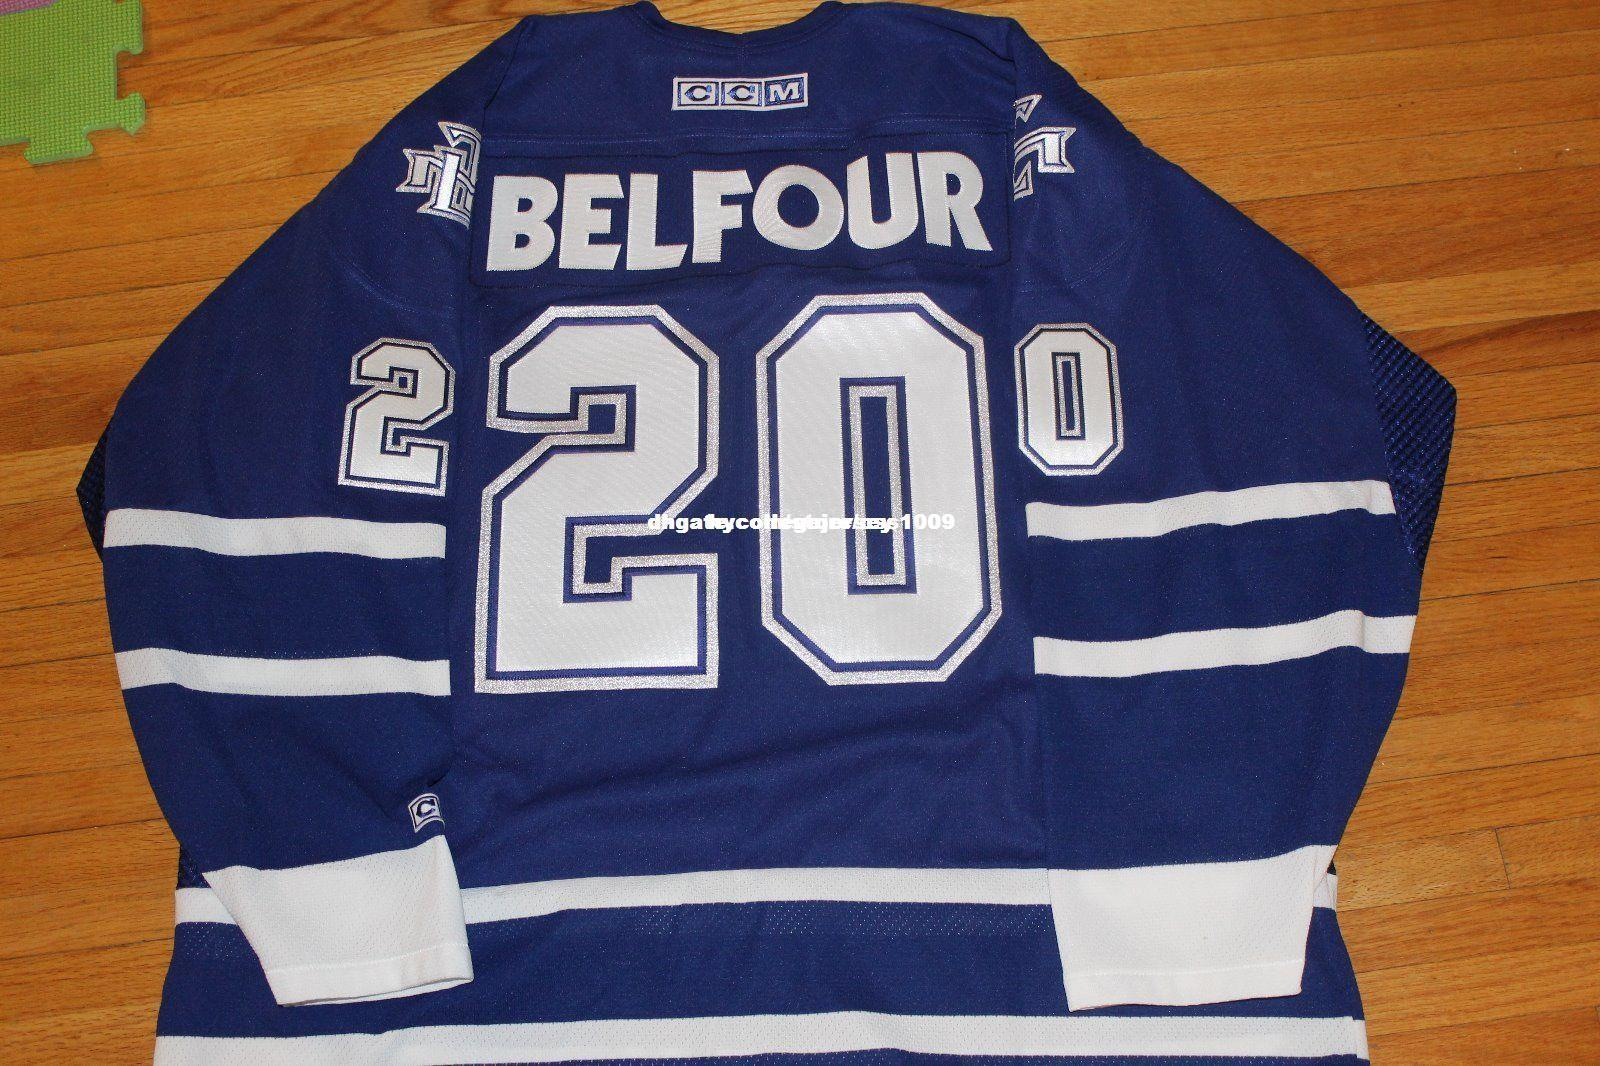 reputable site dfd4c 2cee6 Cheap custom VINTAGE 2002 TORONTO MAPLE LEAFS JERSEY ED BELFOUR RARE Mens  Personalized stitching jerseys